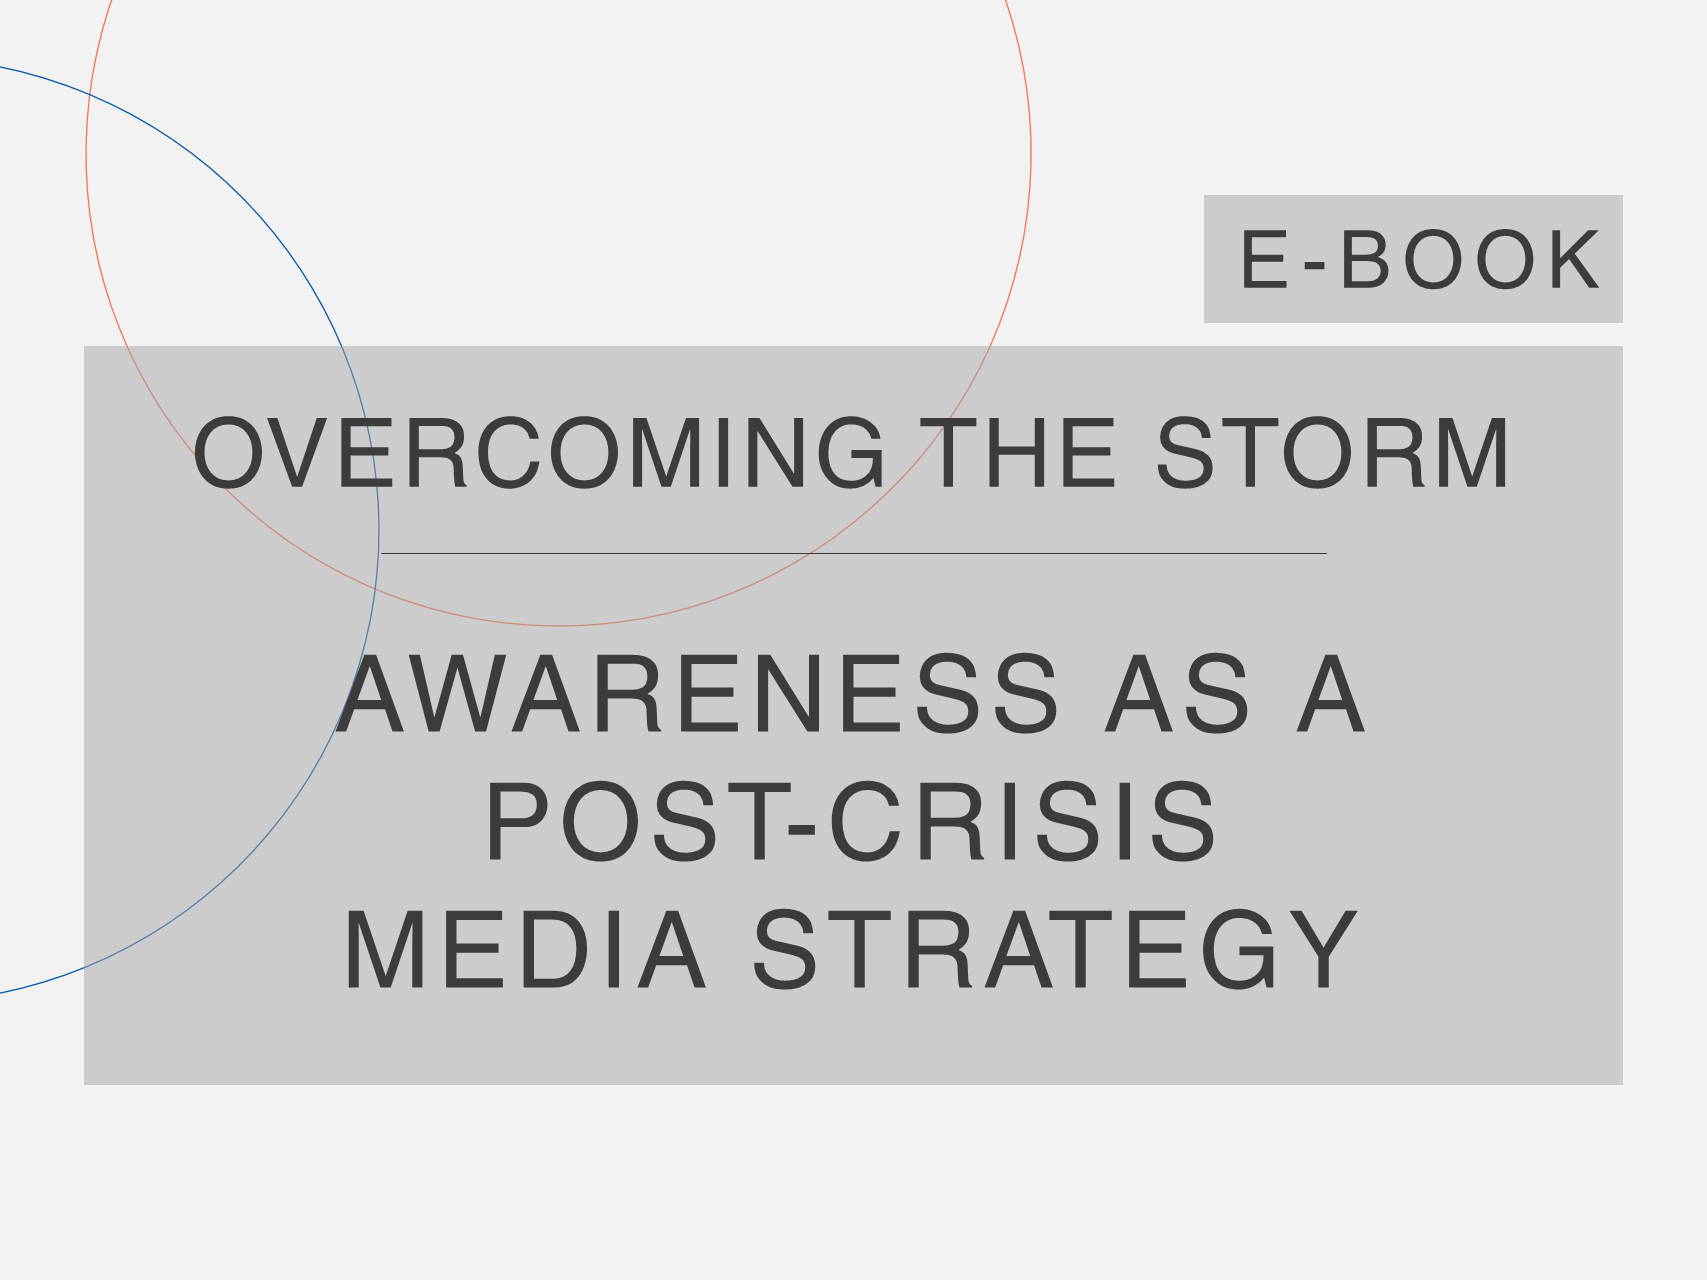 Cosin Consulting's' Overcoming the Storm 'e-Book cover on' Awareness as a Post-Crisis Media Strategy